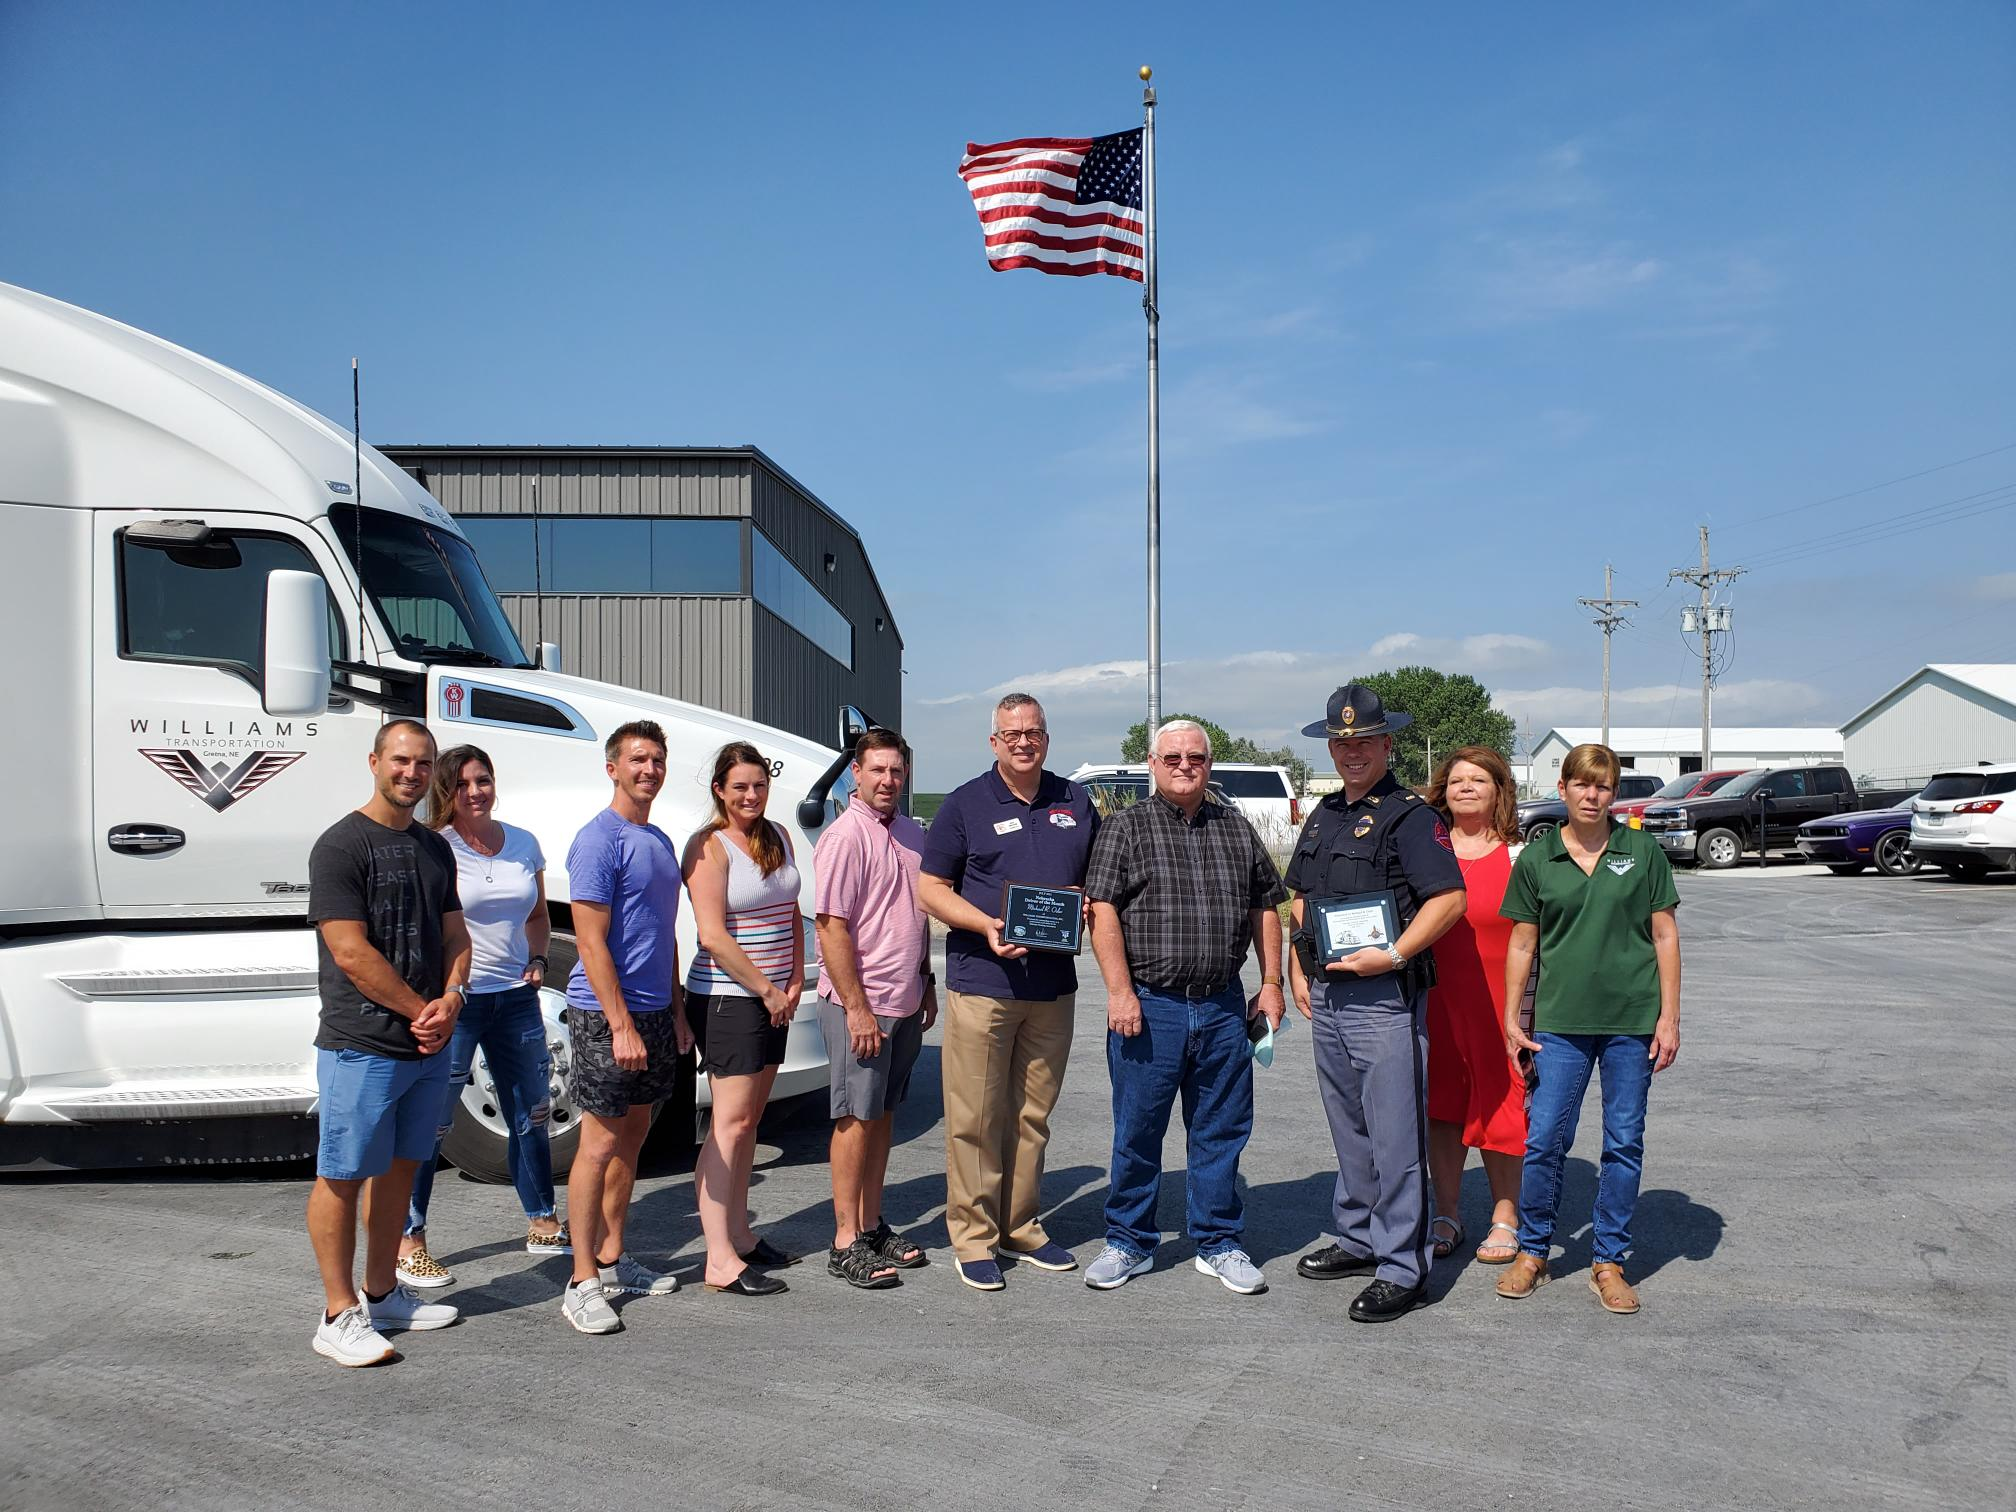 A group of truckers pose for a photo in front of a truck